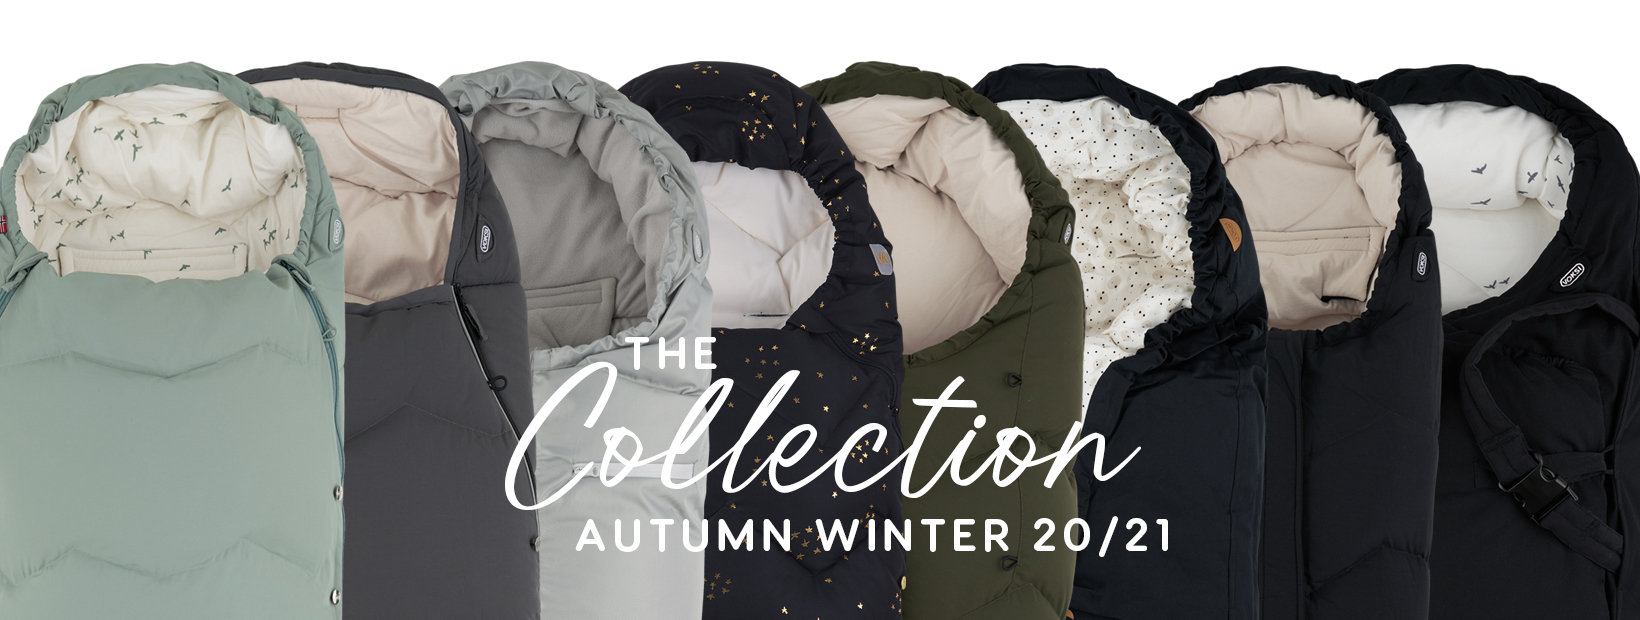 Collection Overview Voksi Autumn Winter 20/21